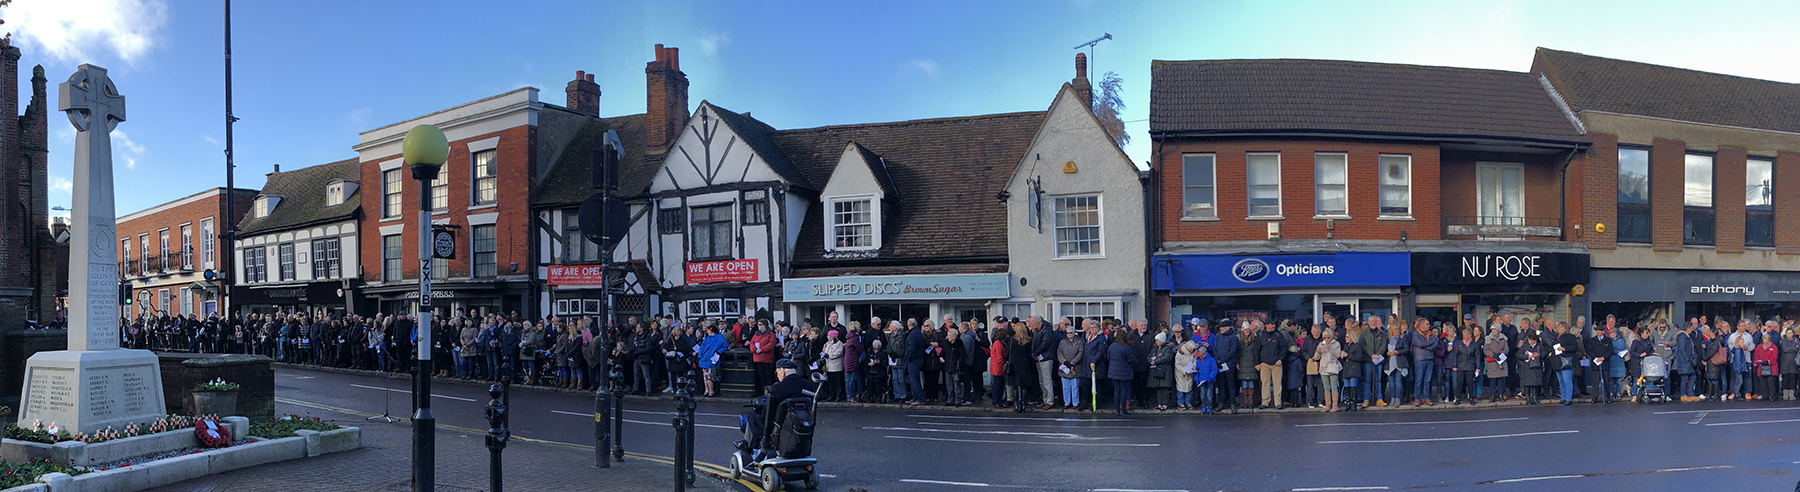 Remembrance Day 2018 - In the High Street